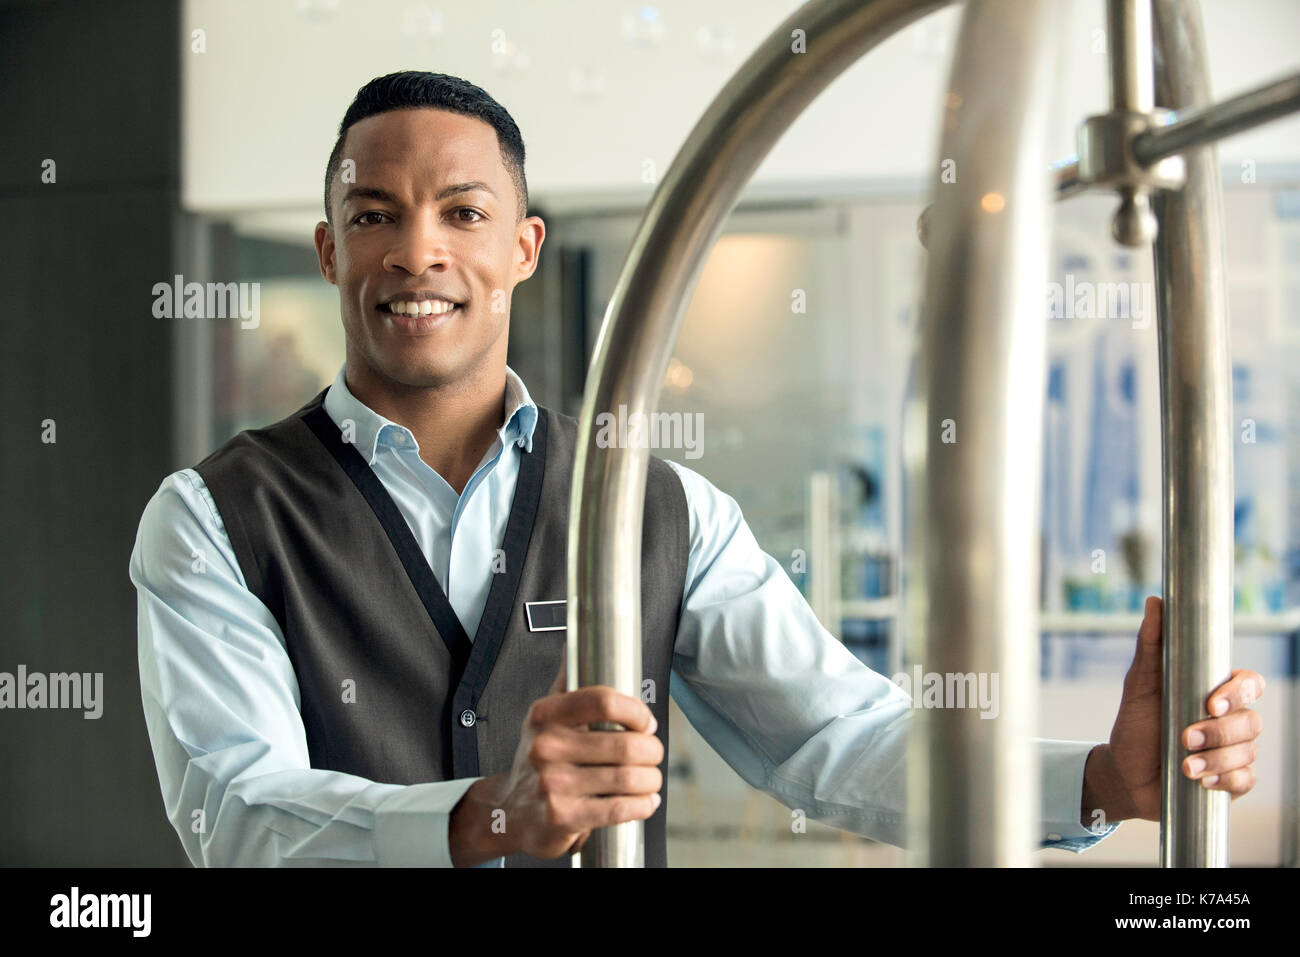 Bellhop at hotel - Stock Image